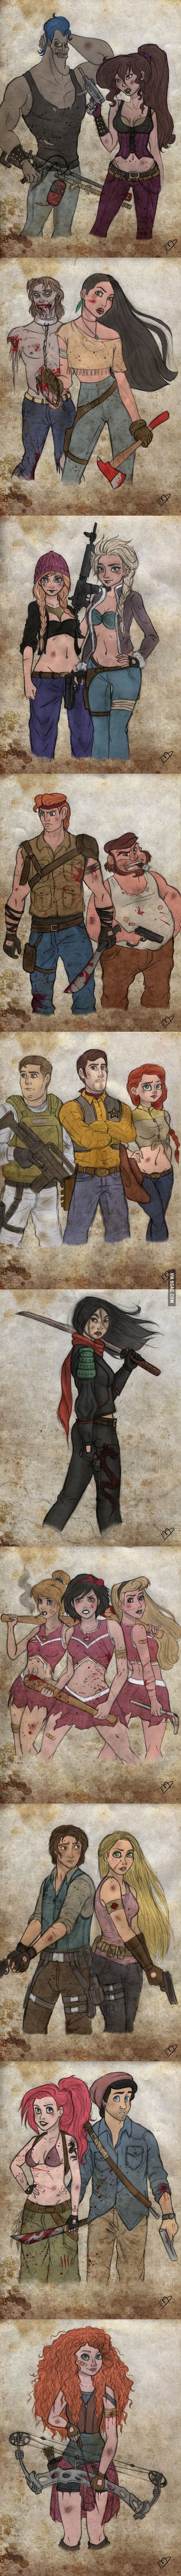 The Walking Disney, my new favorite thing on Pinterest!